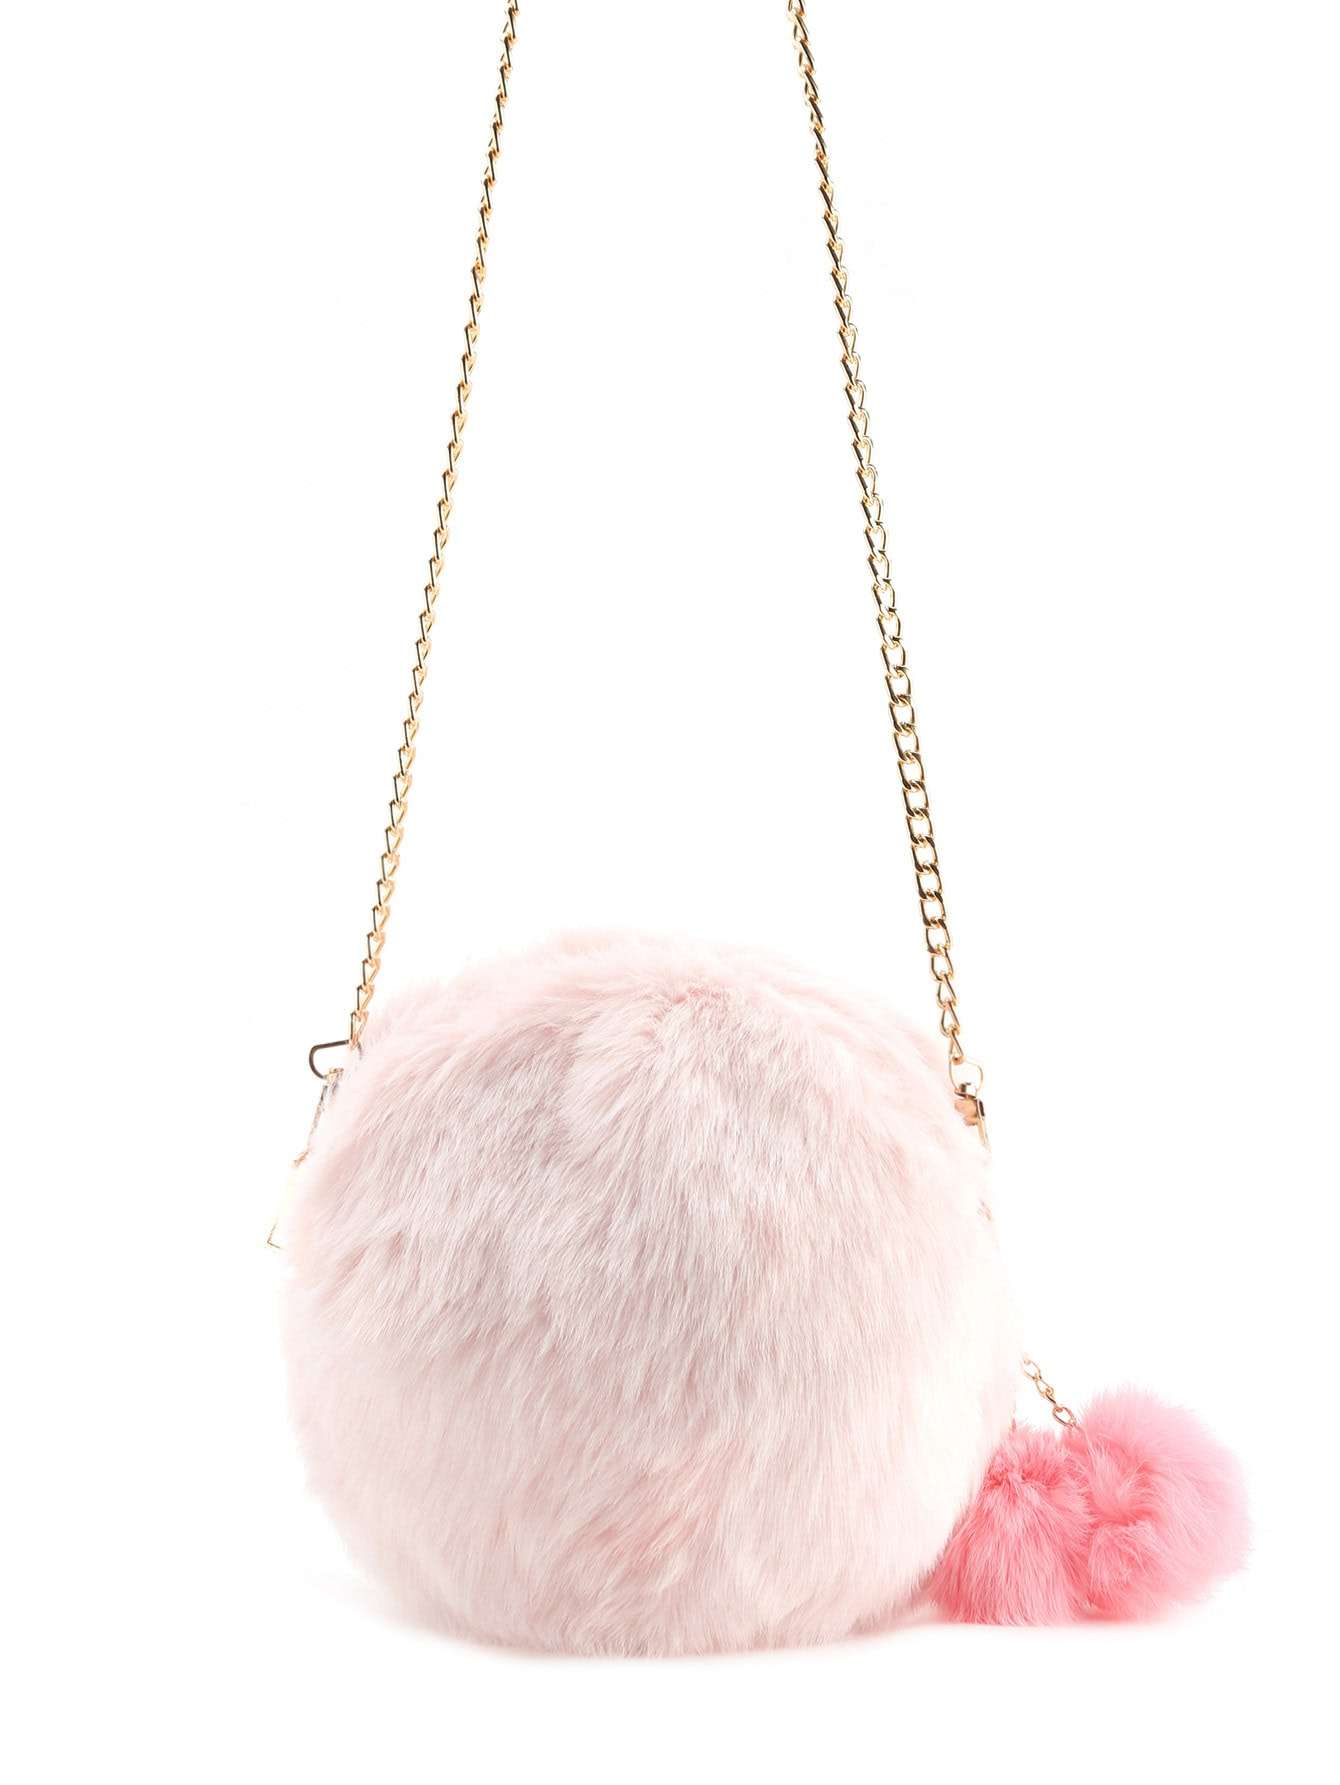 Faux Fur Overlay Crossbody Bag With Pom Pom faux fur overlay tote bag